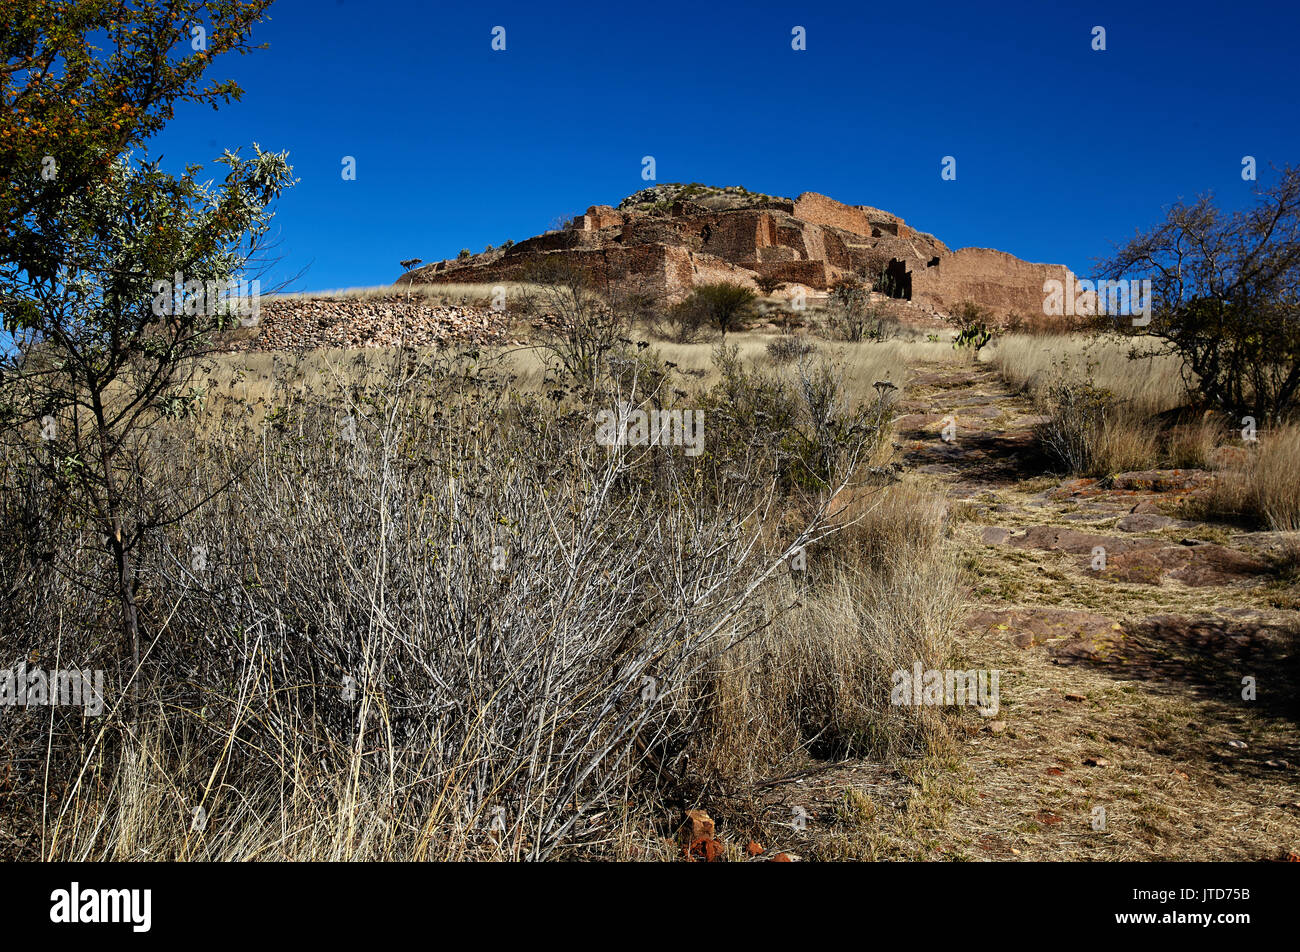 America; Mexico; Zacatecas; Malpaso valley;Pre hispanic; archaeological site La Quemada ; First occupied from about 200-300 A.D., its population peaked after 500 A.D., before the site was abandoned shortly after 900 A.D. Little is known about the first settlers here. 18th century historians conjectured the site's construction might have been made by the transient Chicomostoc culture. But the constructions are clearly too extensive, and the quality of architecture - Stock Image